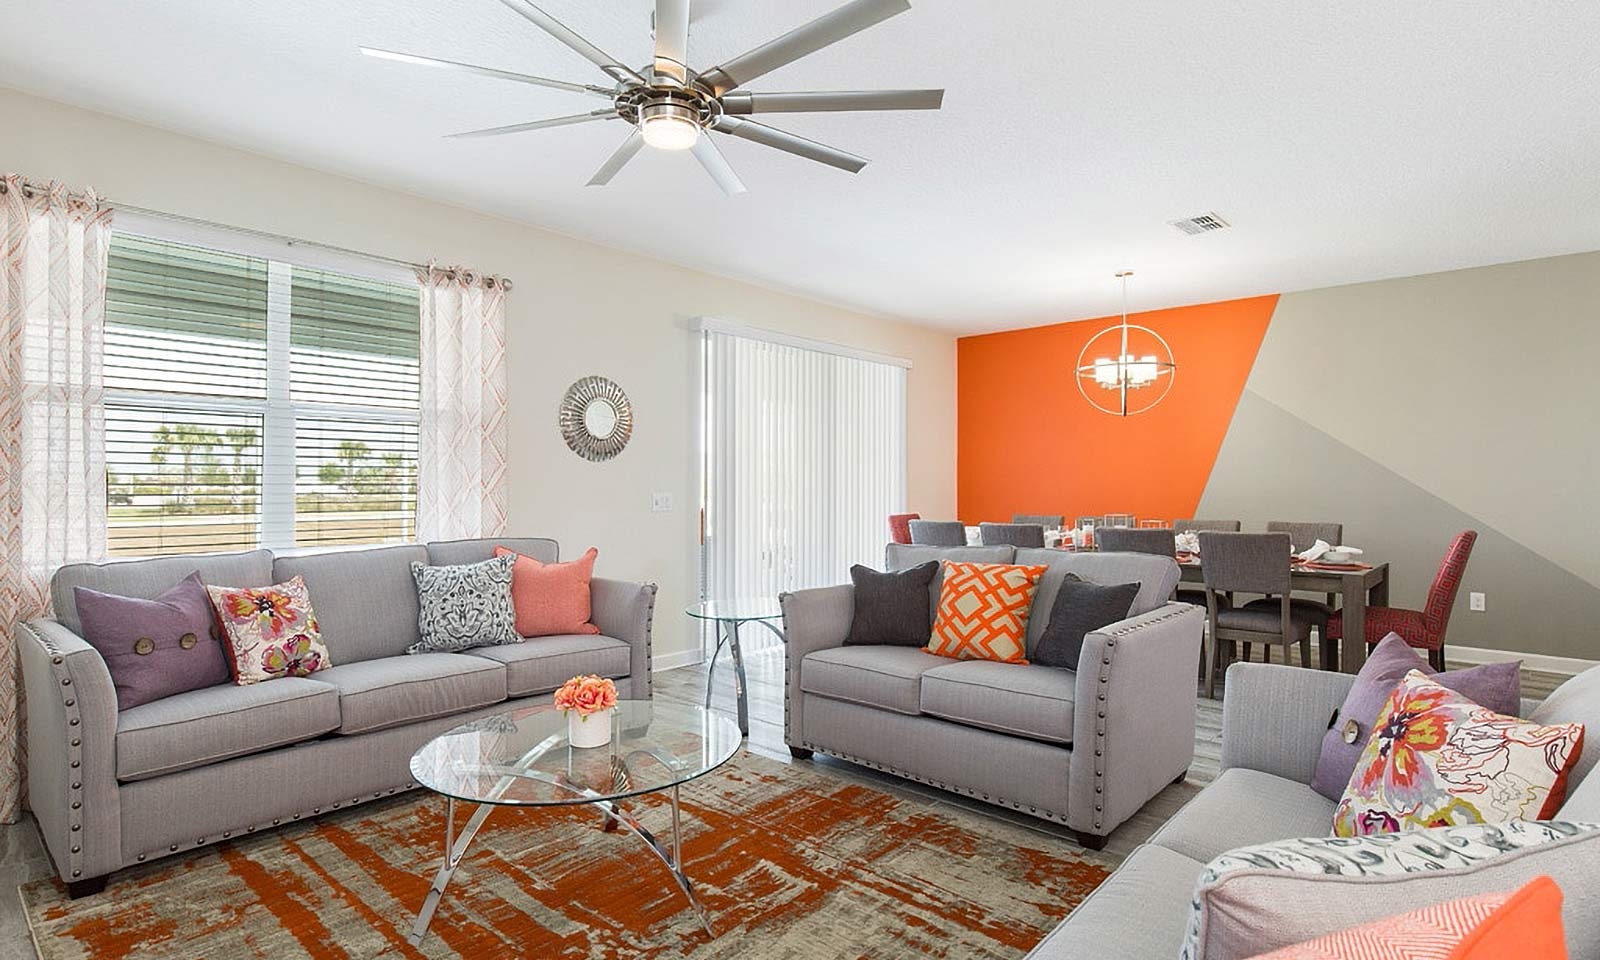 The Colorful Retreat-182508